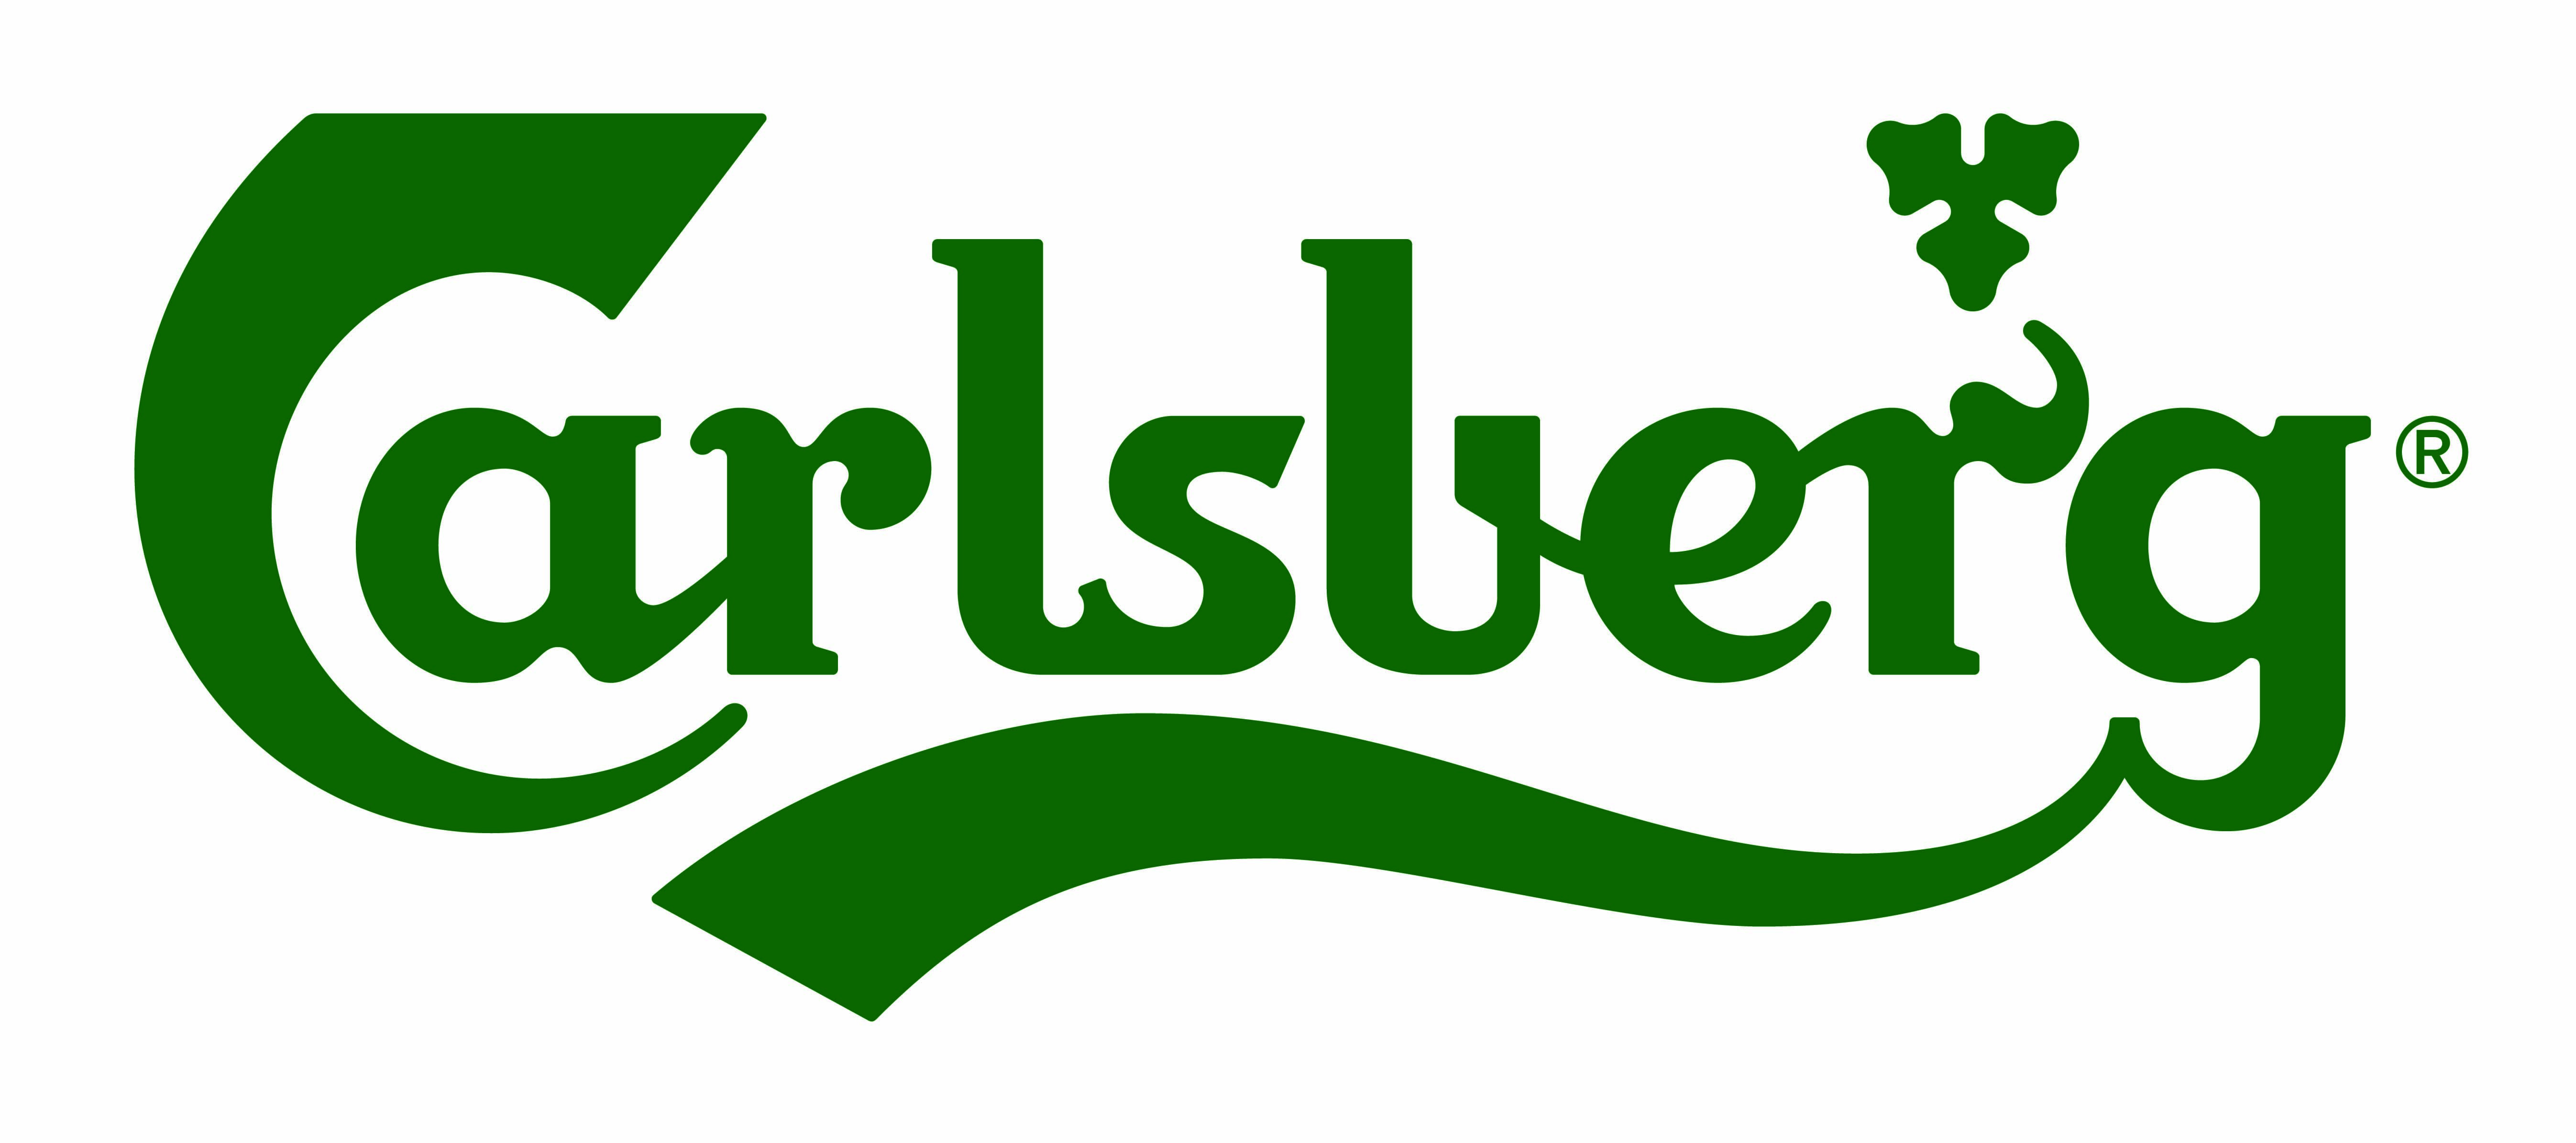 in 1904 the carlsberg logo was created in art nouveau style and has rh pinterest com art nouveau logo inspiration modern art nouveau logo